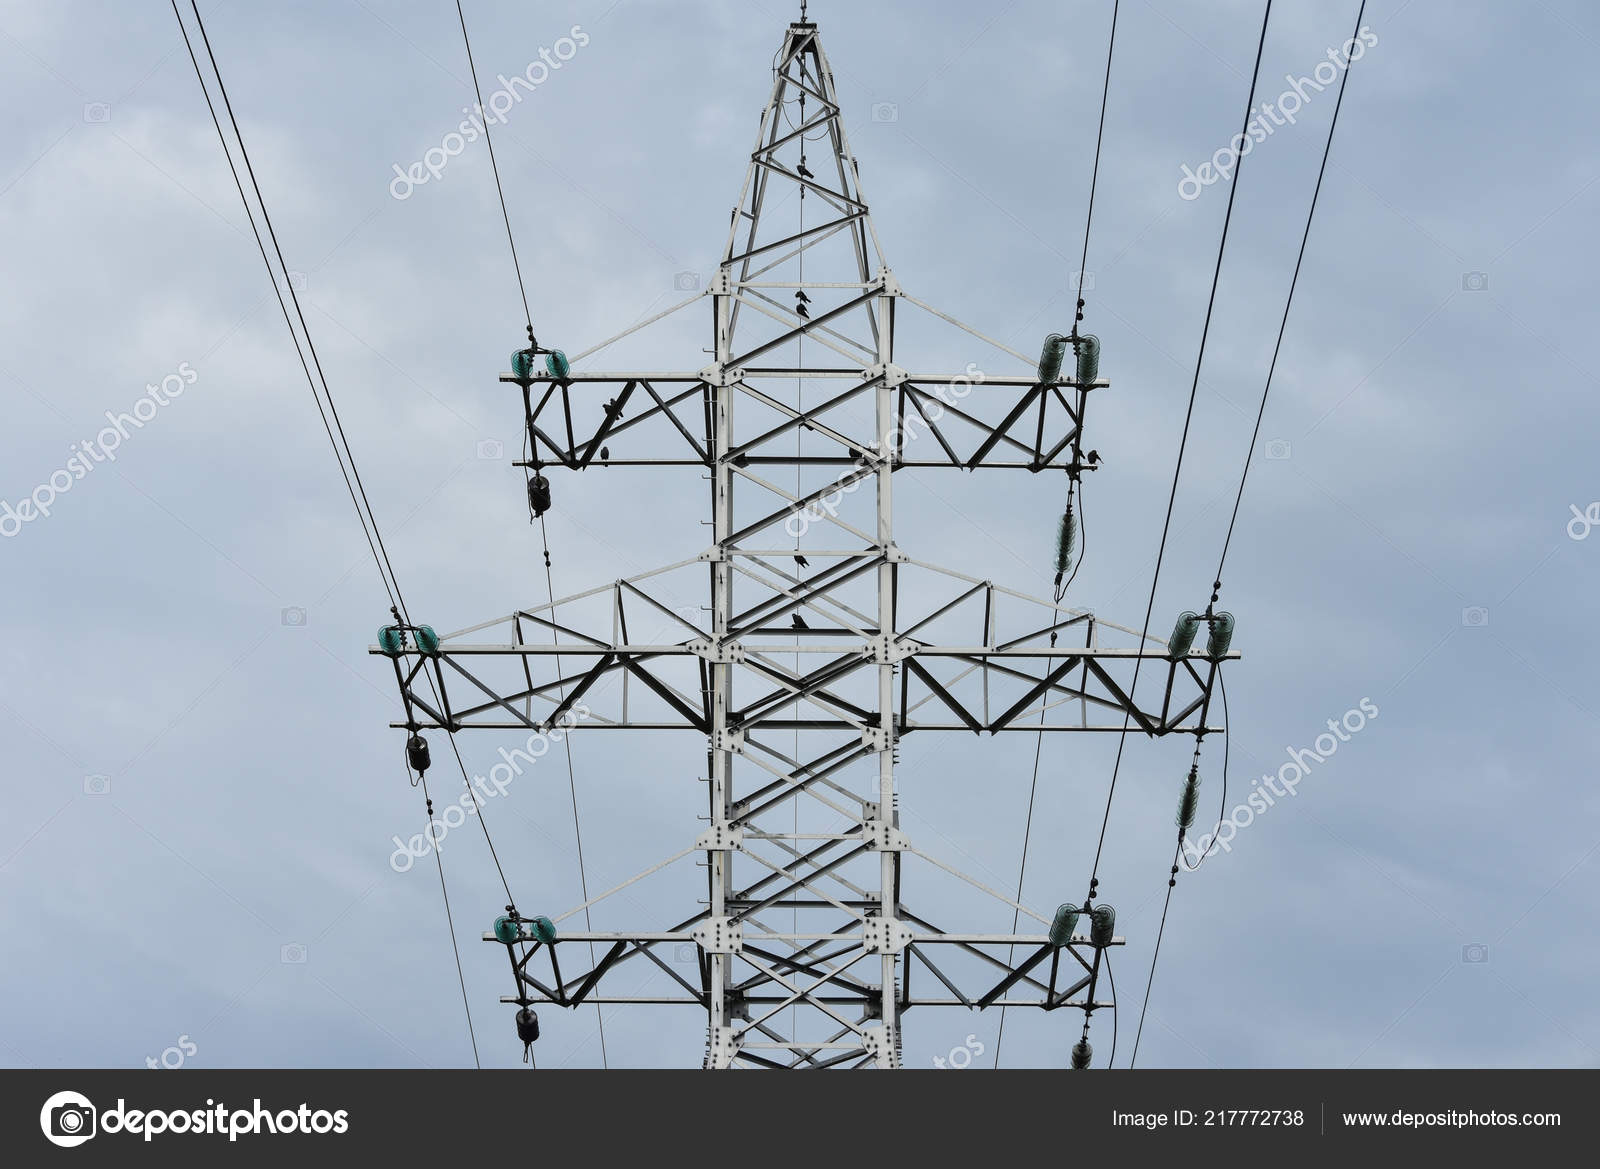 The design of the metal pole power lines with wires against